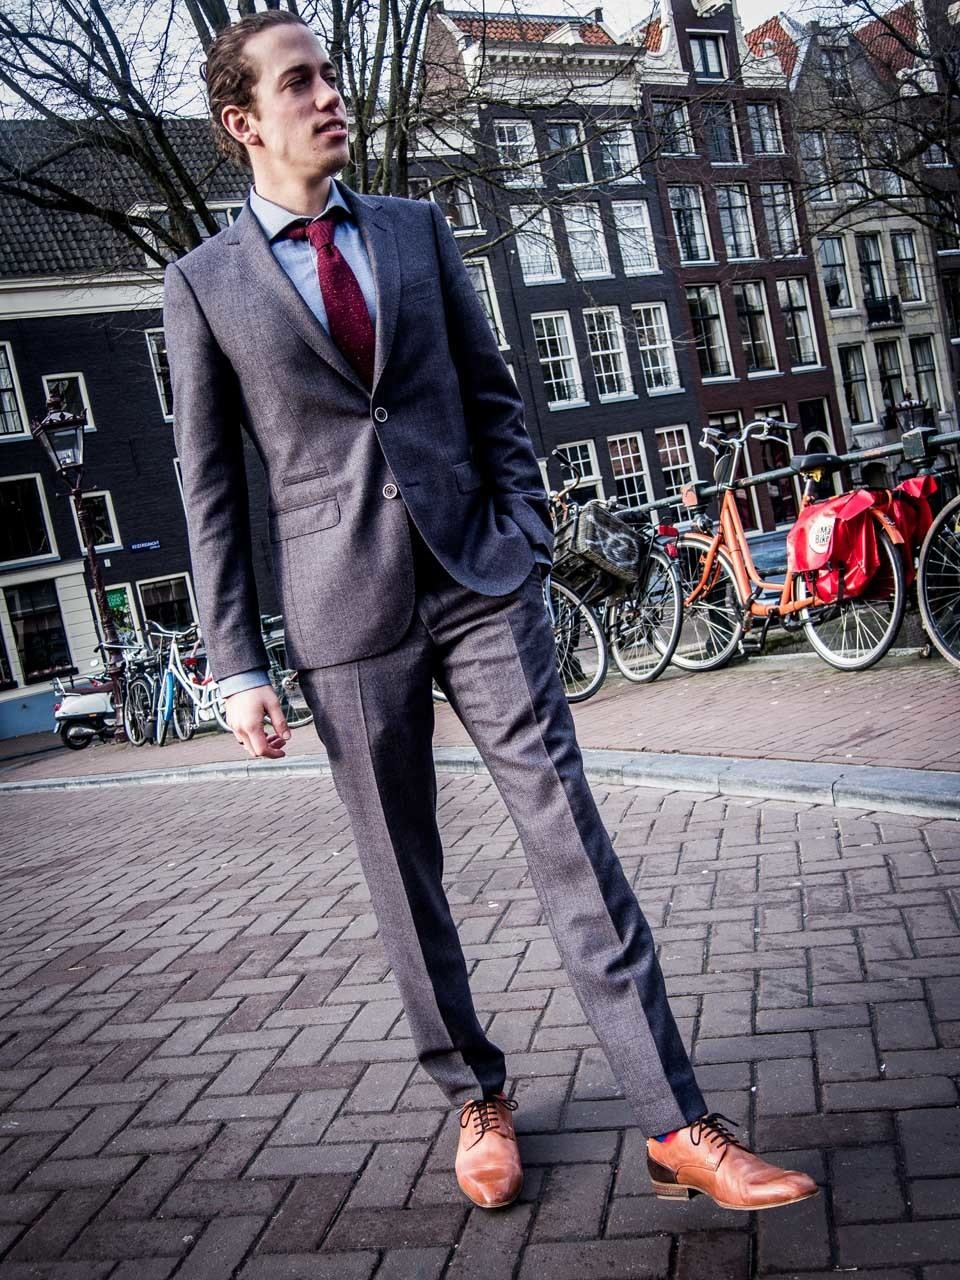 Dutch Dandies - Only for men - Manify2